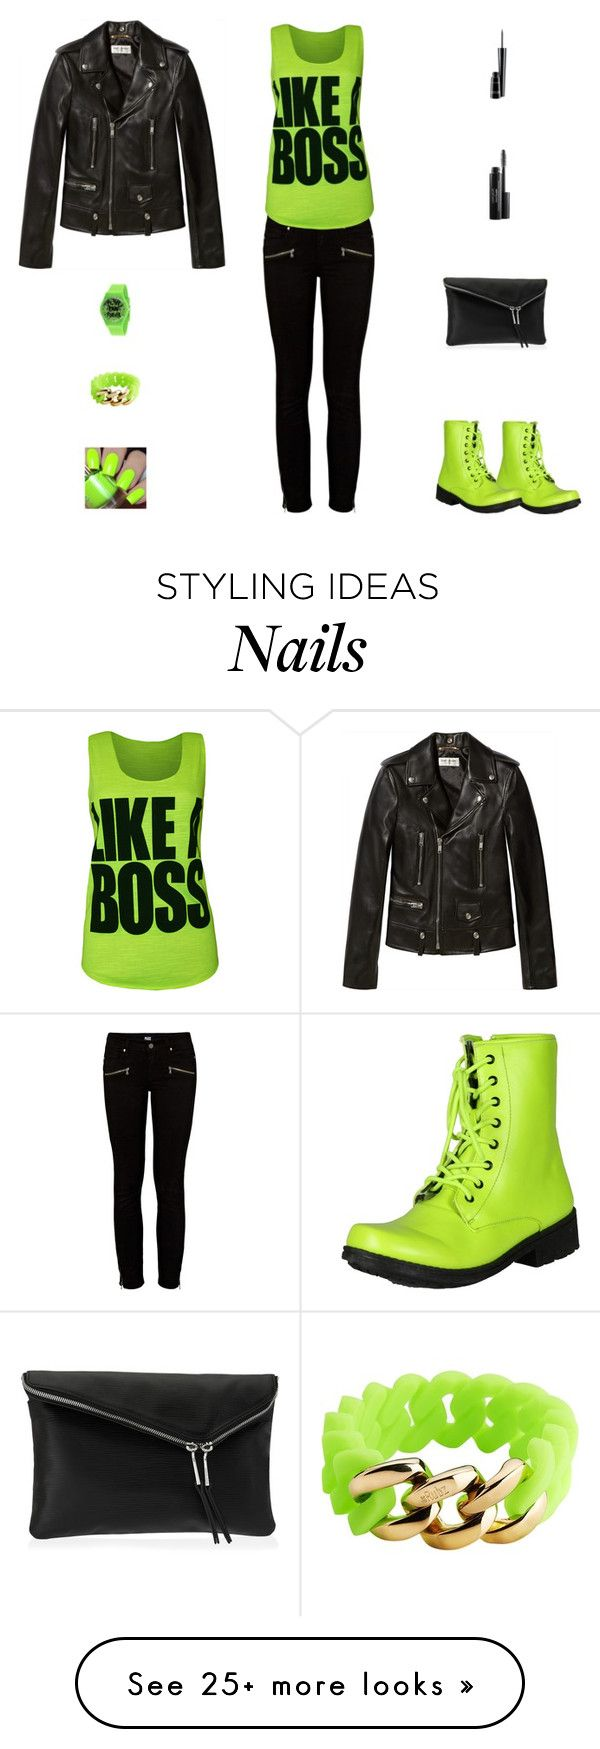 """""""Contest: Black & Neon Green Outfit"""" by billsacred on Polyvore featuring Qupid, Paige Denim, WearAll, Yves Saint Laurent, Henri Bendel, KR3W, The Rubz, MAC Cosmetics and Laura Geller"""